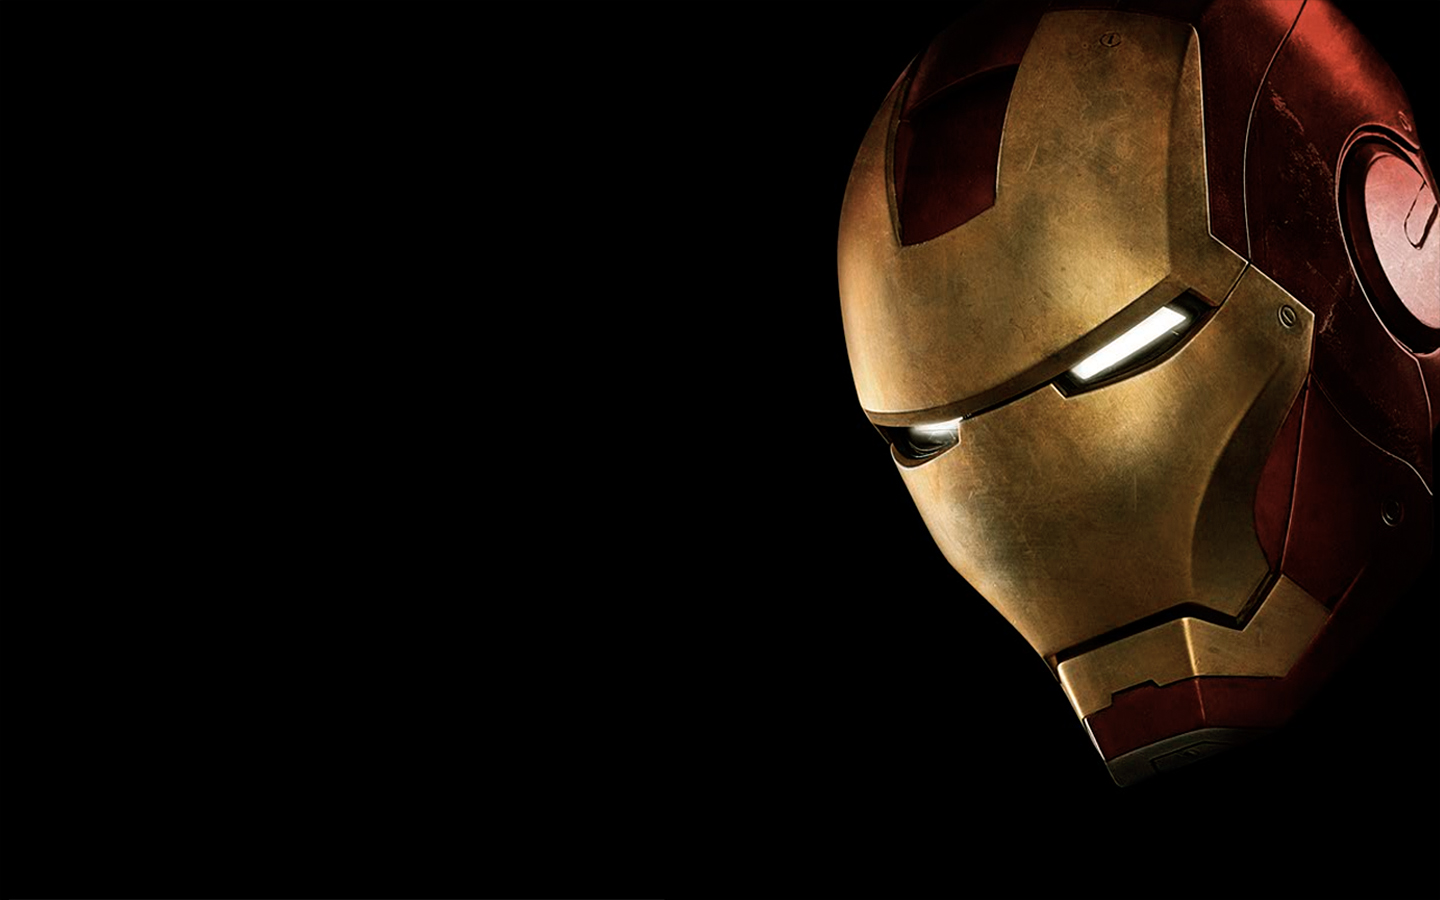 Minimal Ironman Wallpaper